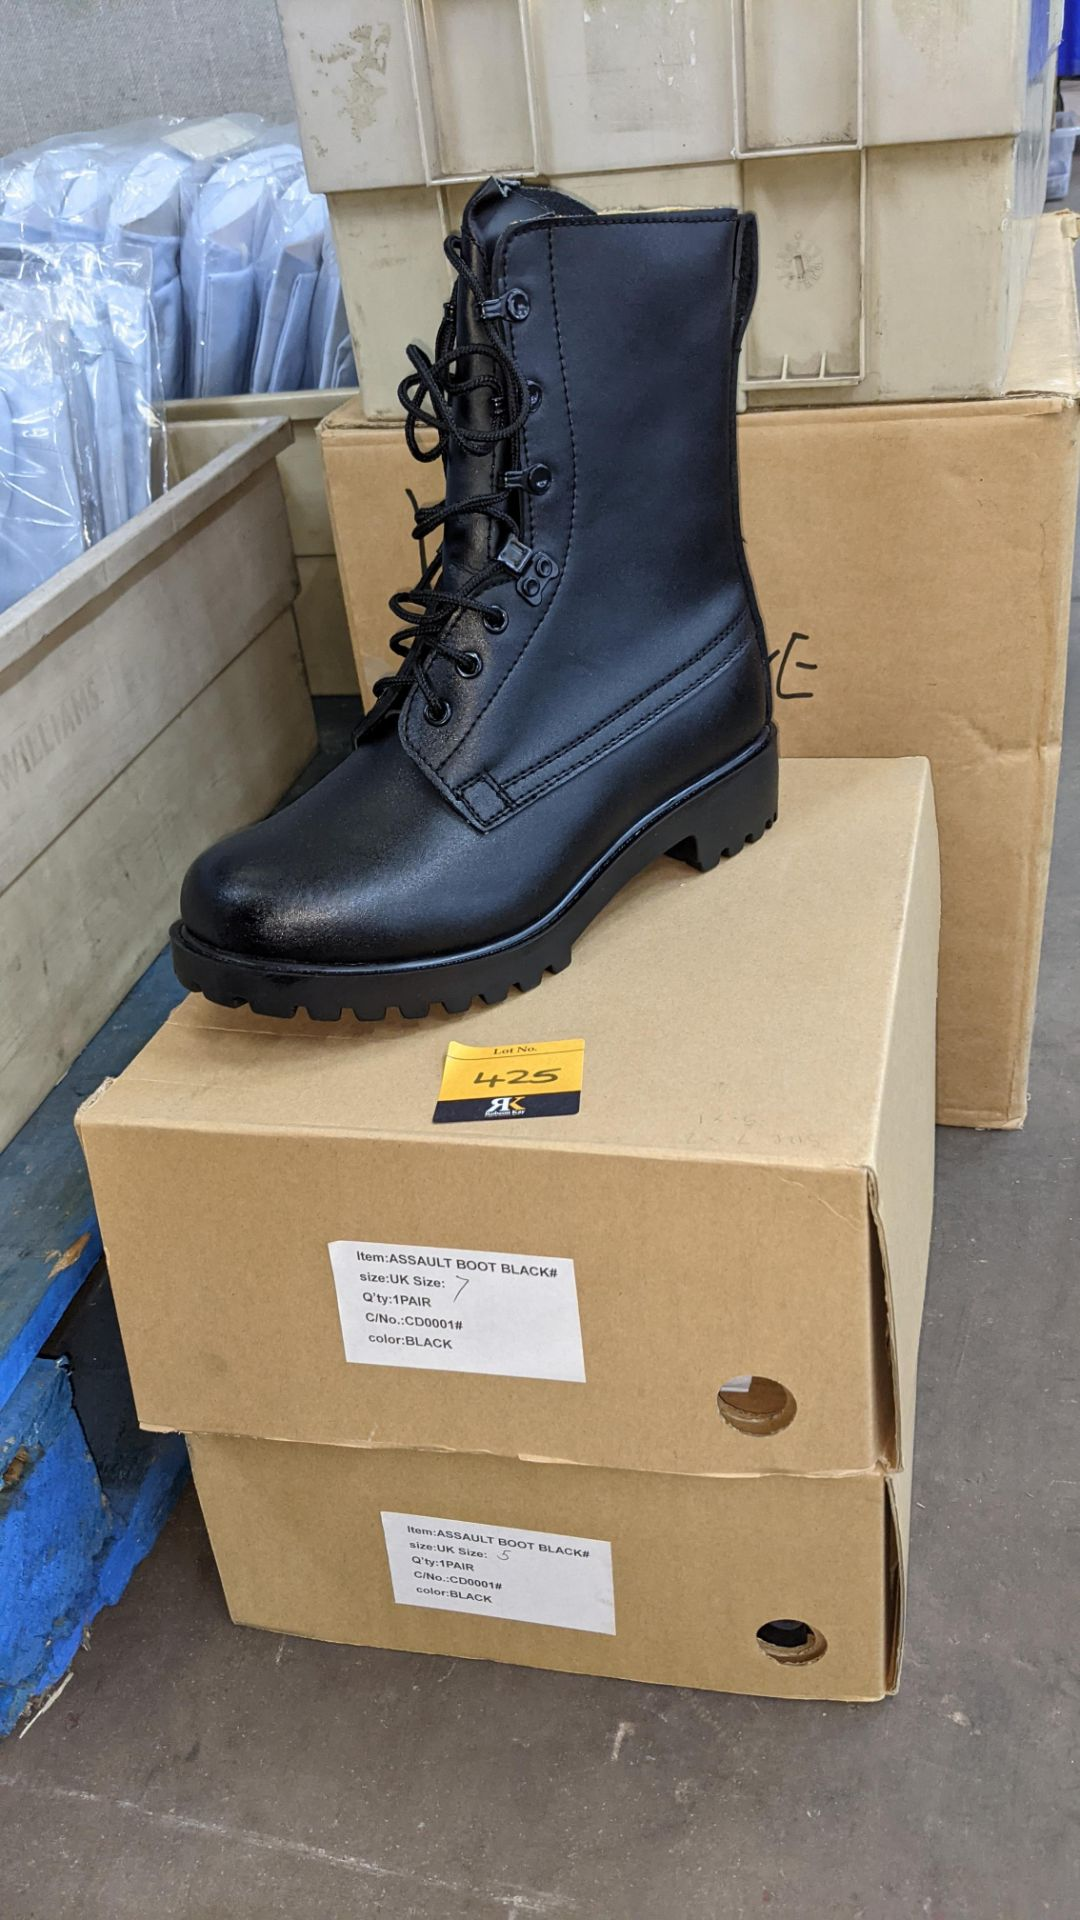 2 pairs of UK black assault boots (sizes 5 & 7)